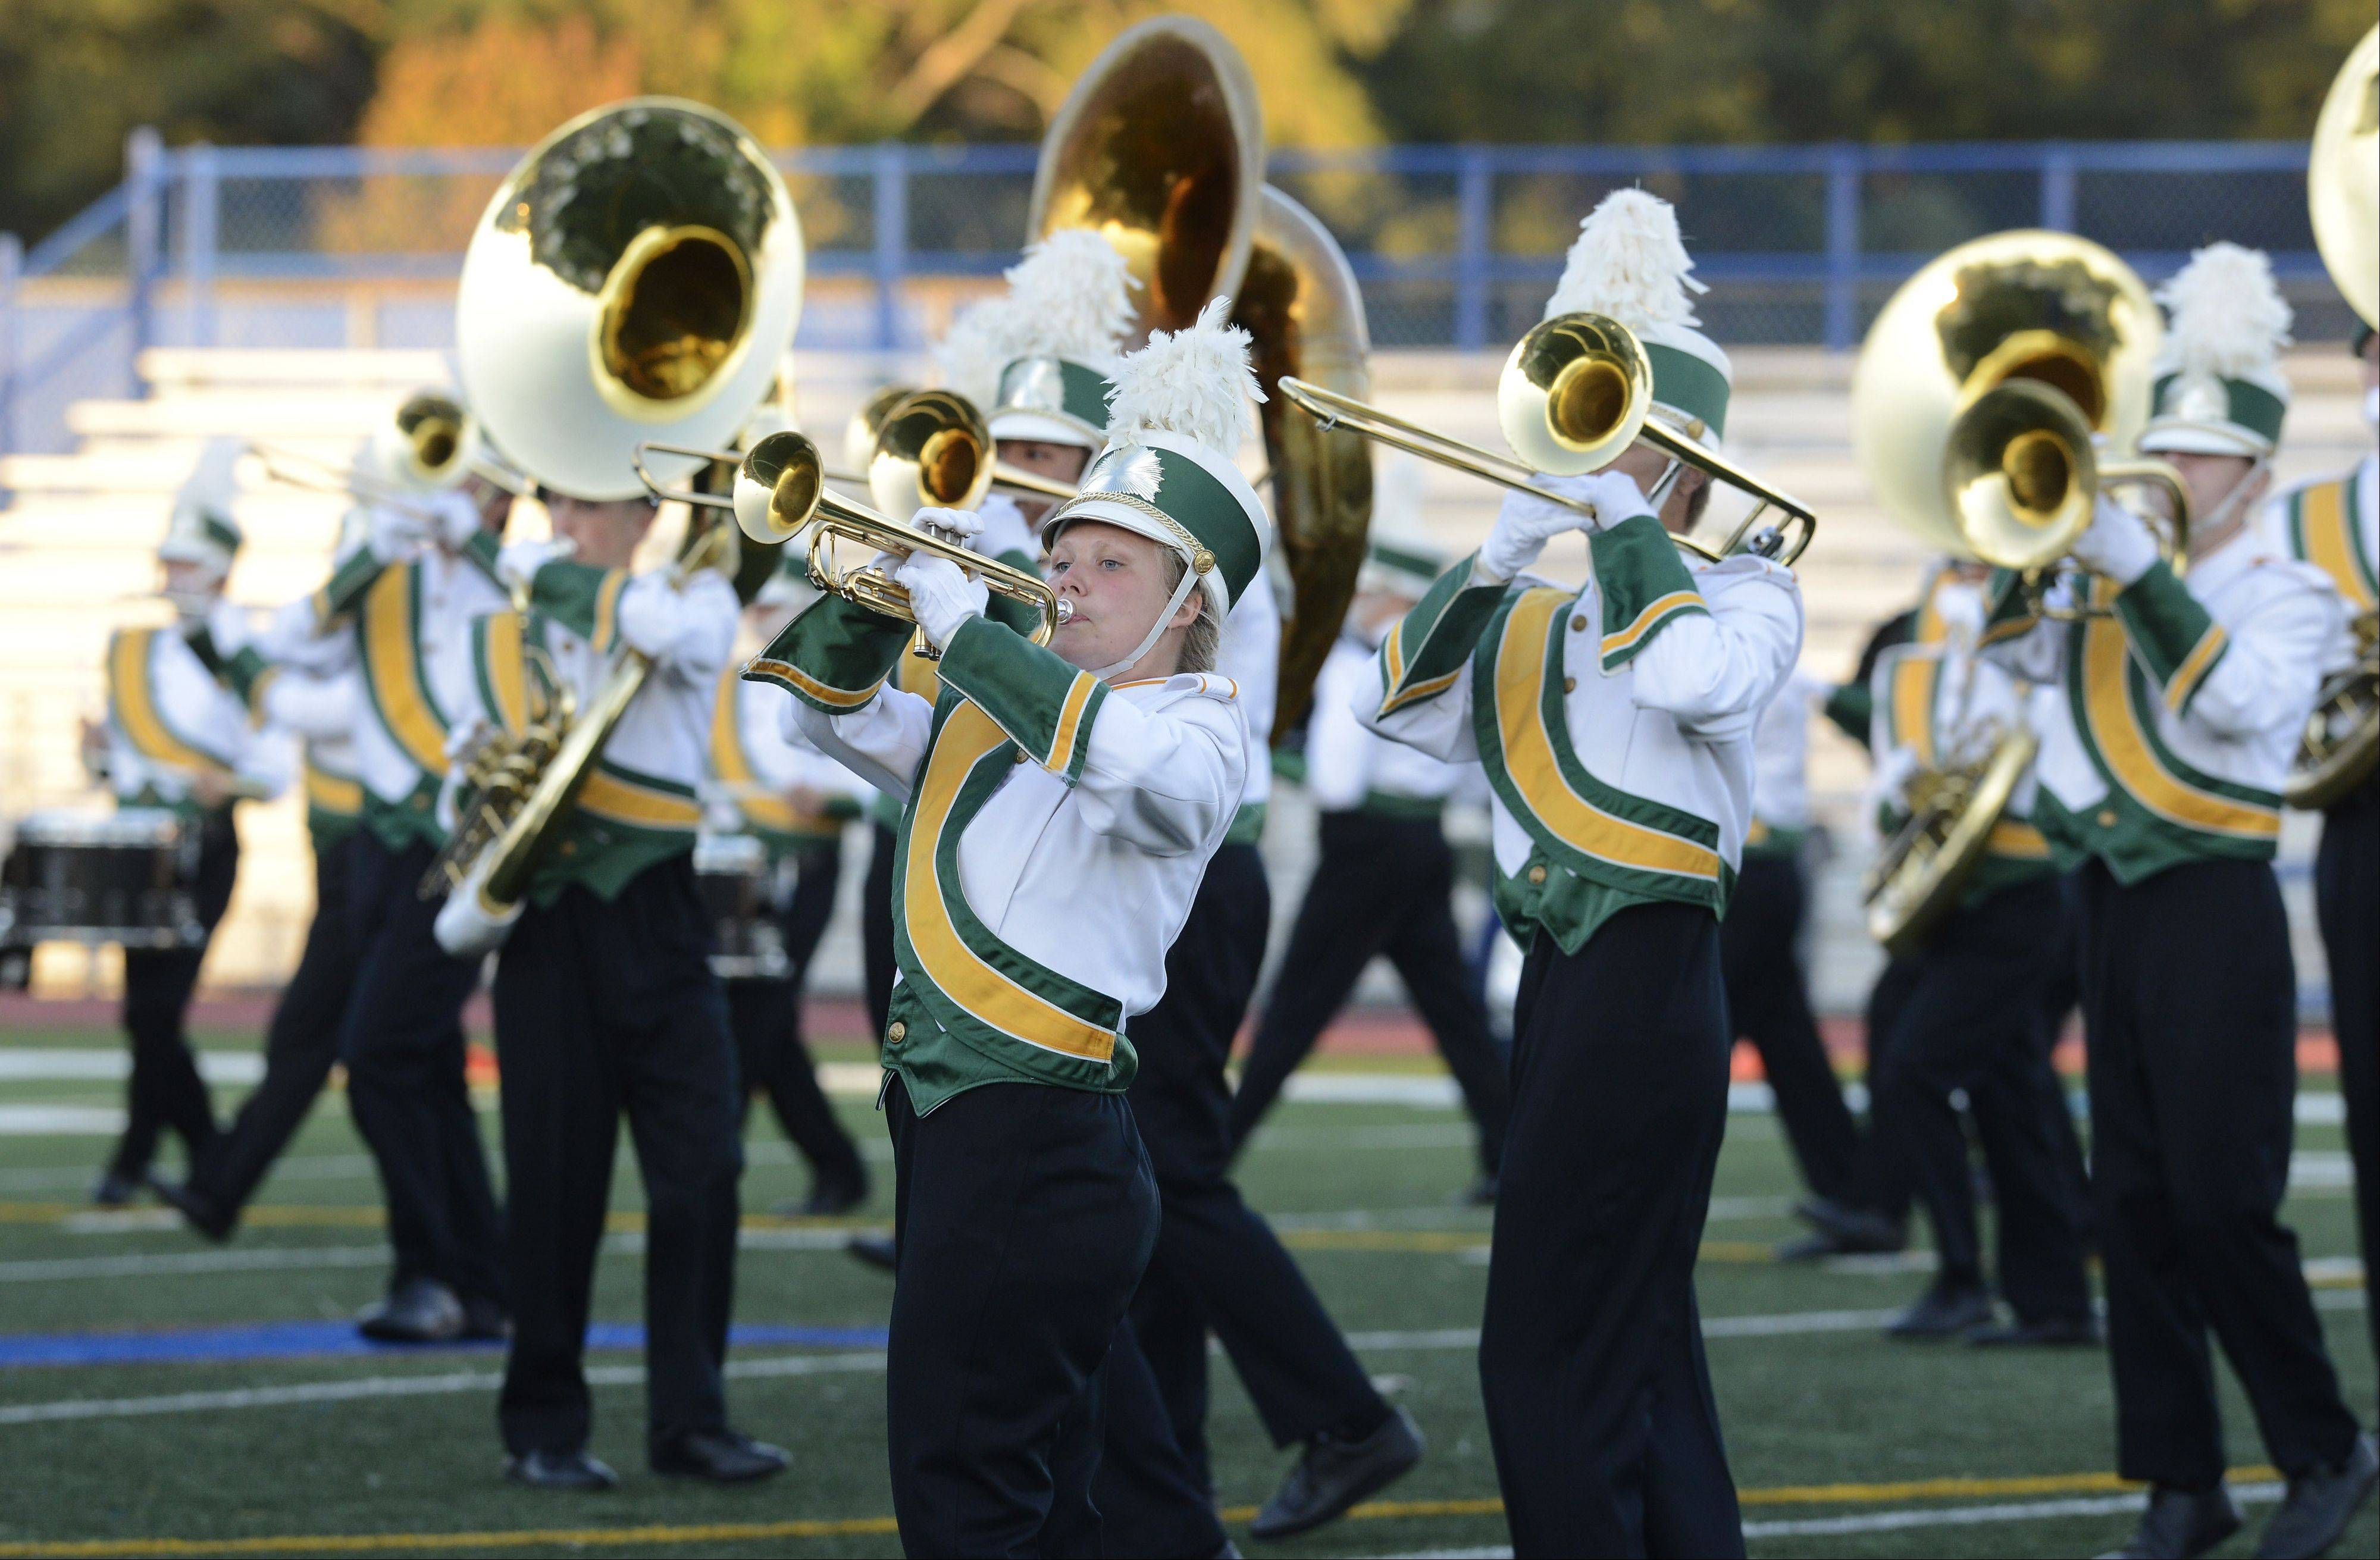 The Waubonsie Valley Marching Warriors perform Saturday during the annual Chicagoland Marching Band Festival at Wheeling High School.